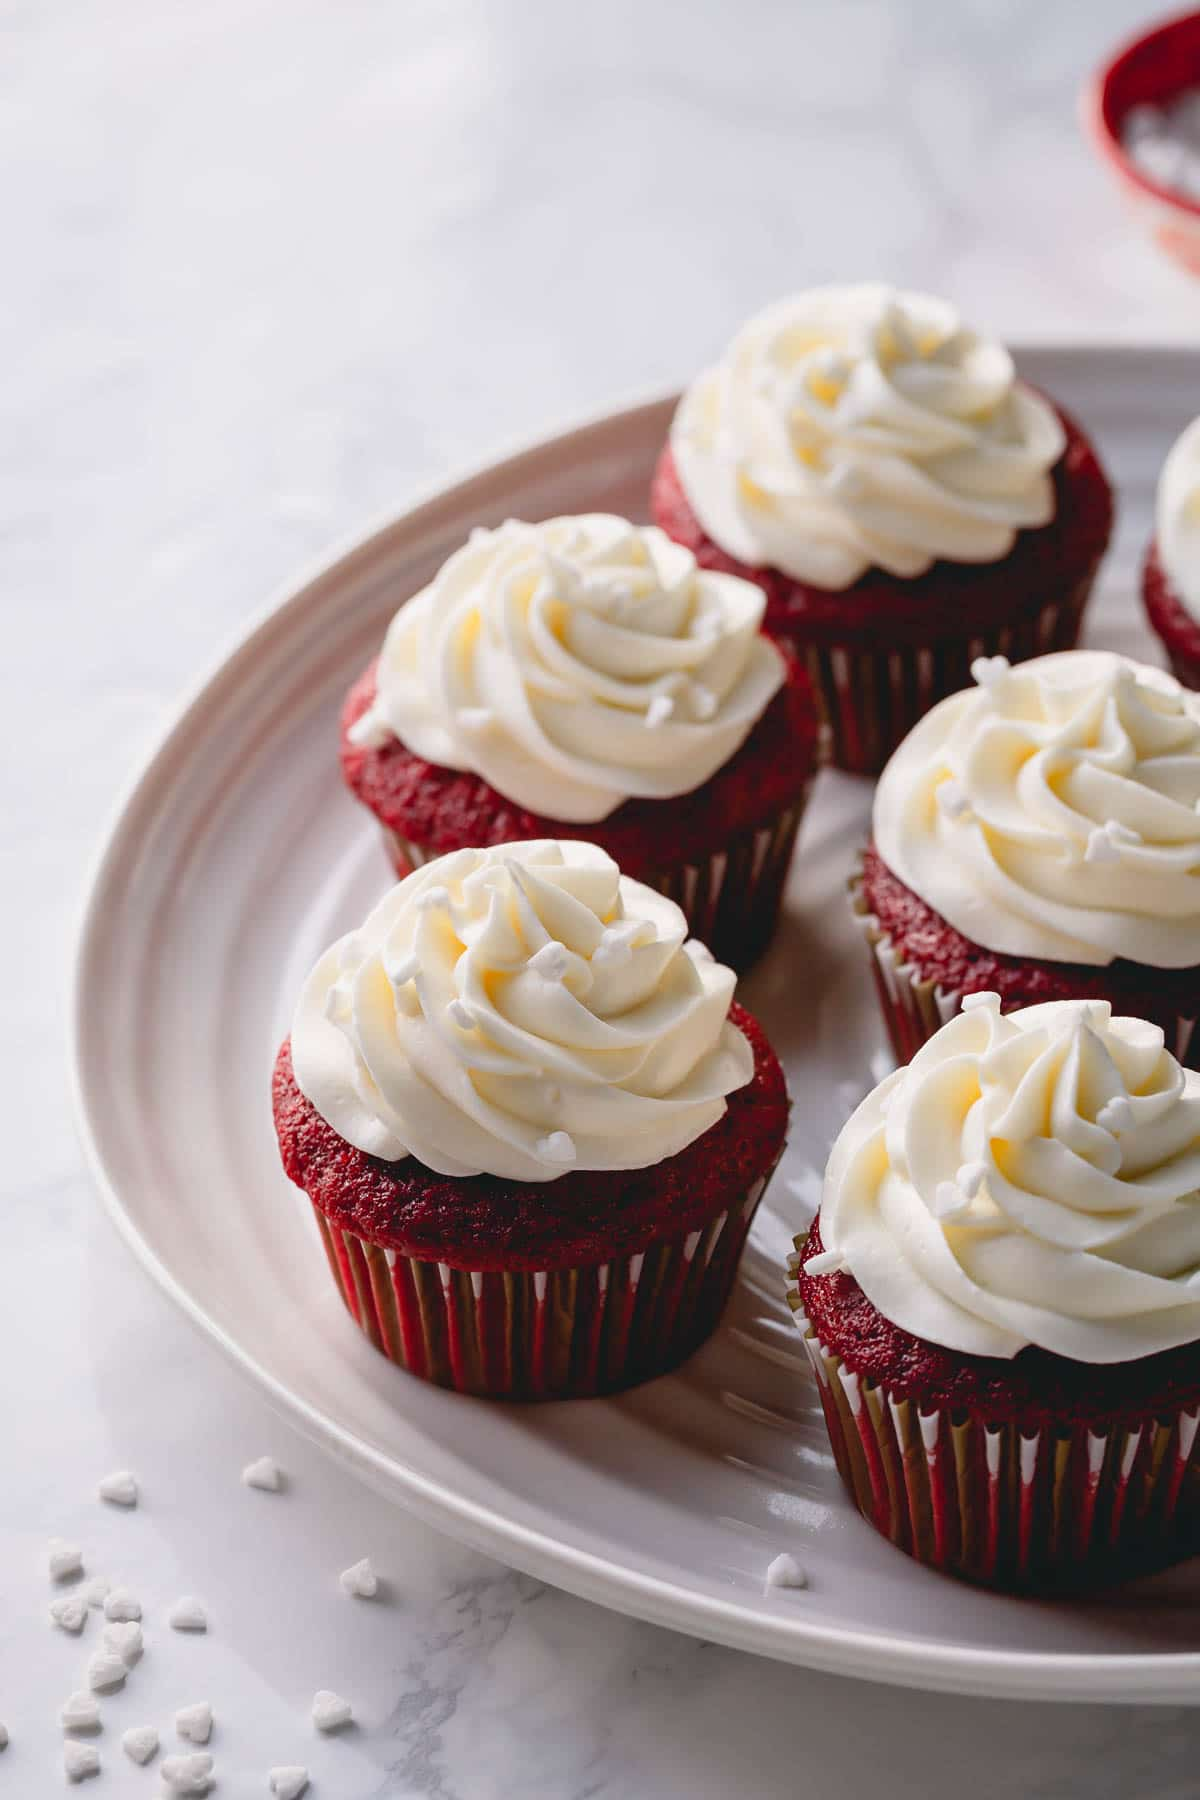 A platter of red velvet cupcakes with tall cream cheese frosting.